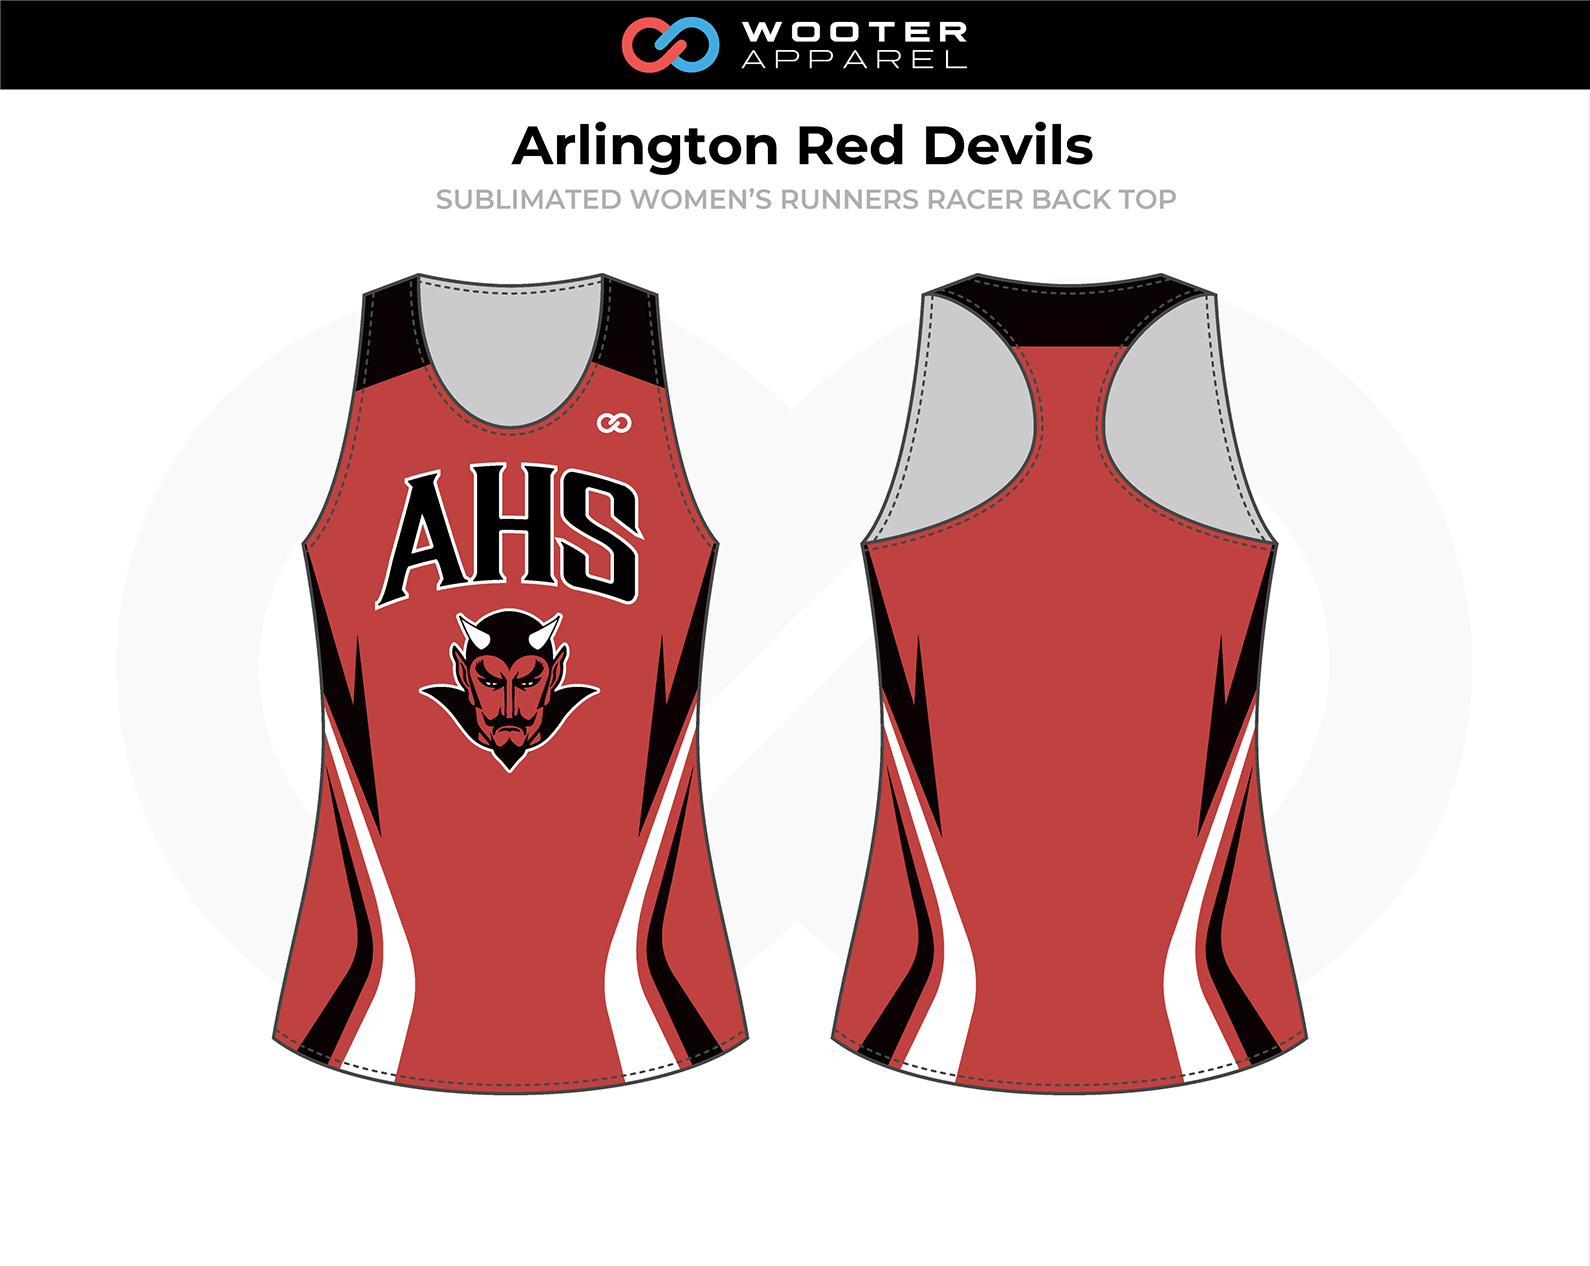 2018-12-17 Arlington Red Devils Running Top (A).png